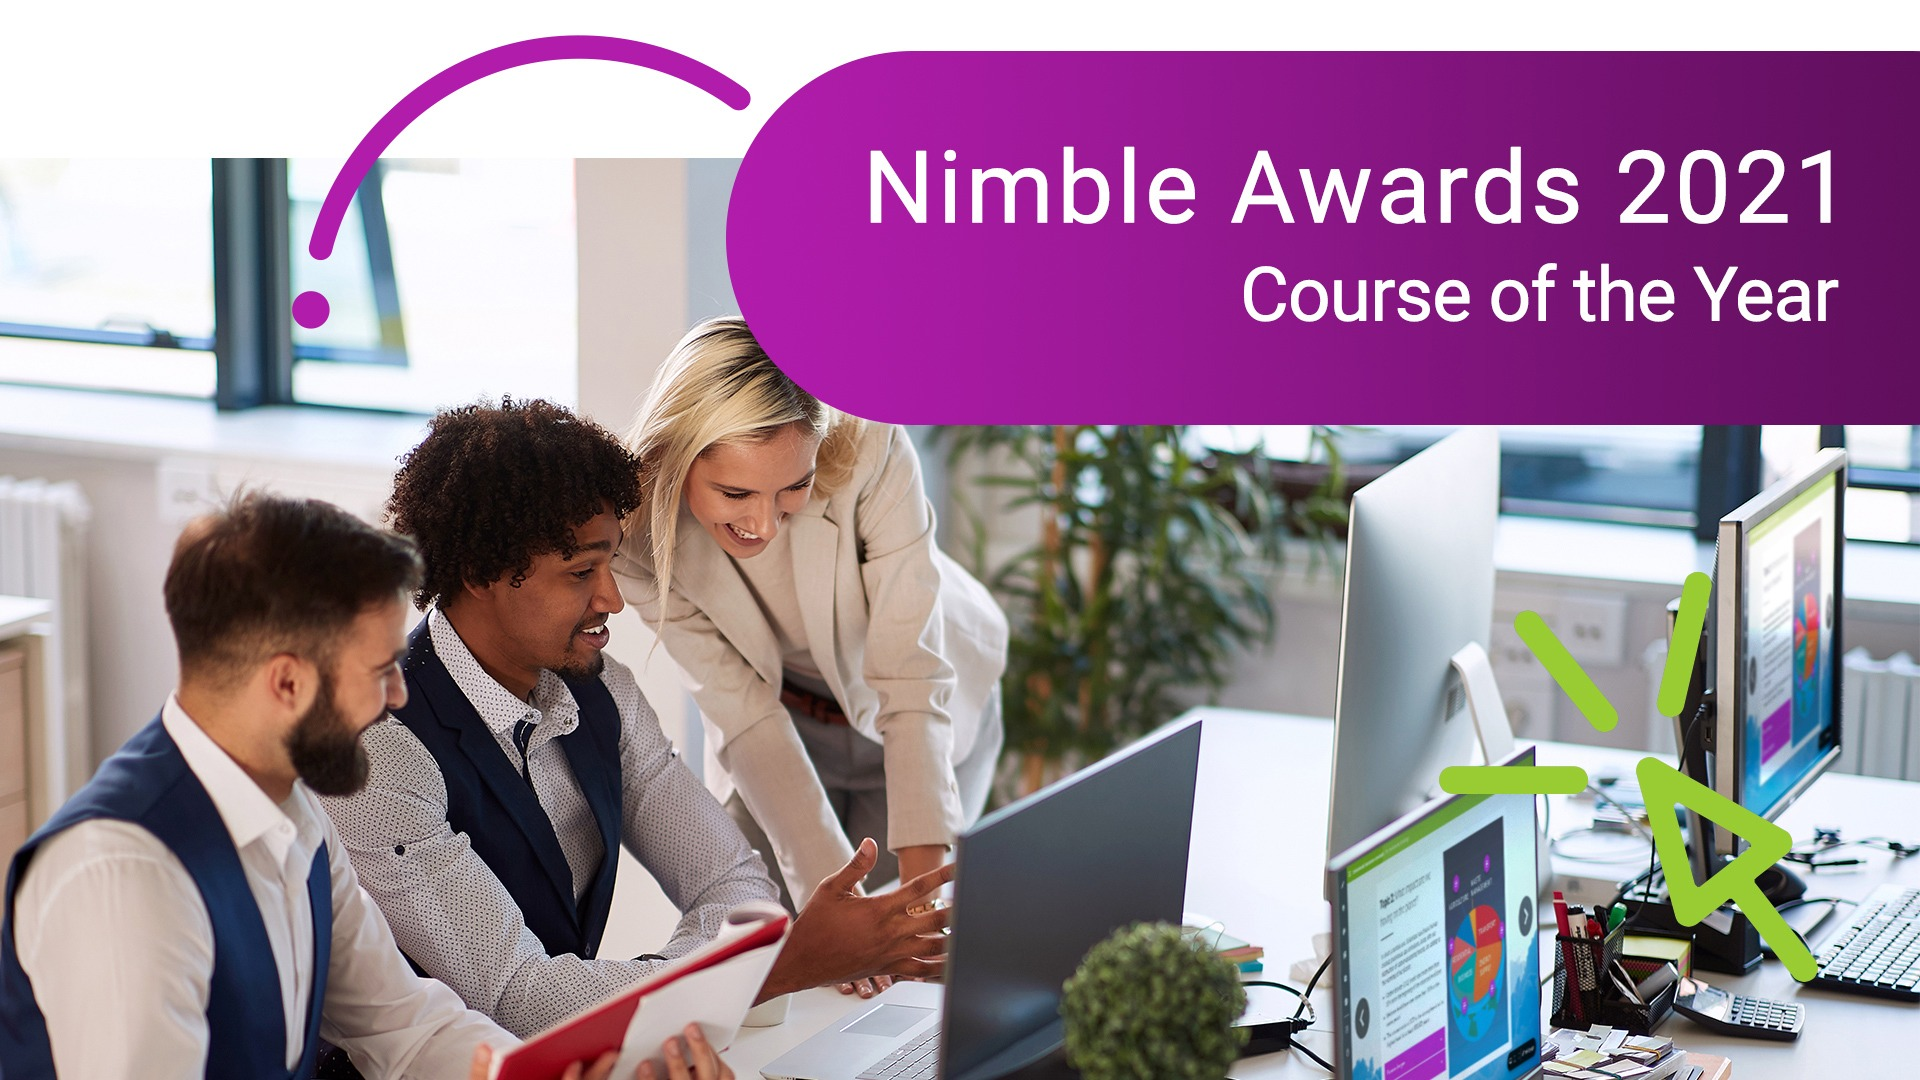 Nimble Awards 2021 Course of the Year